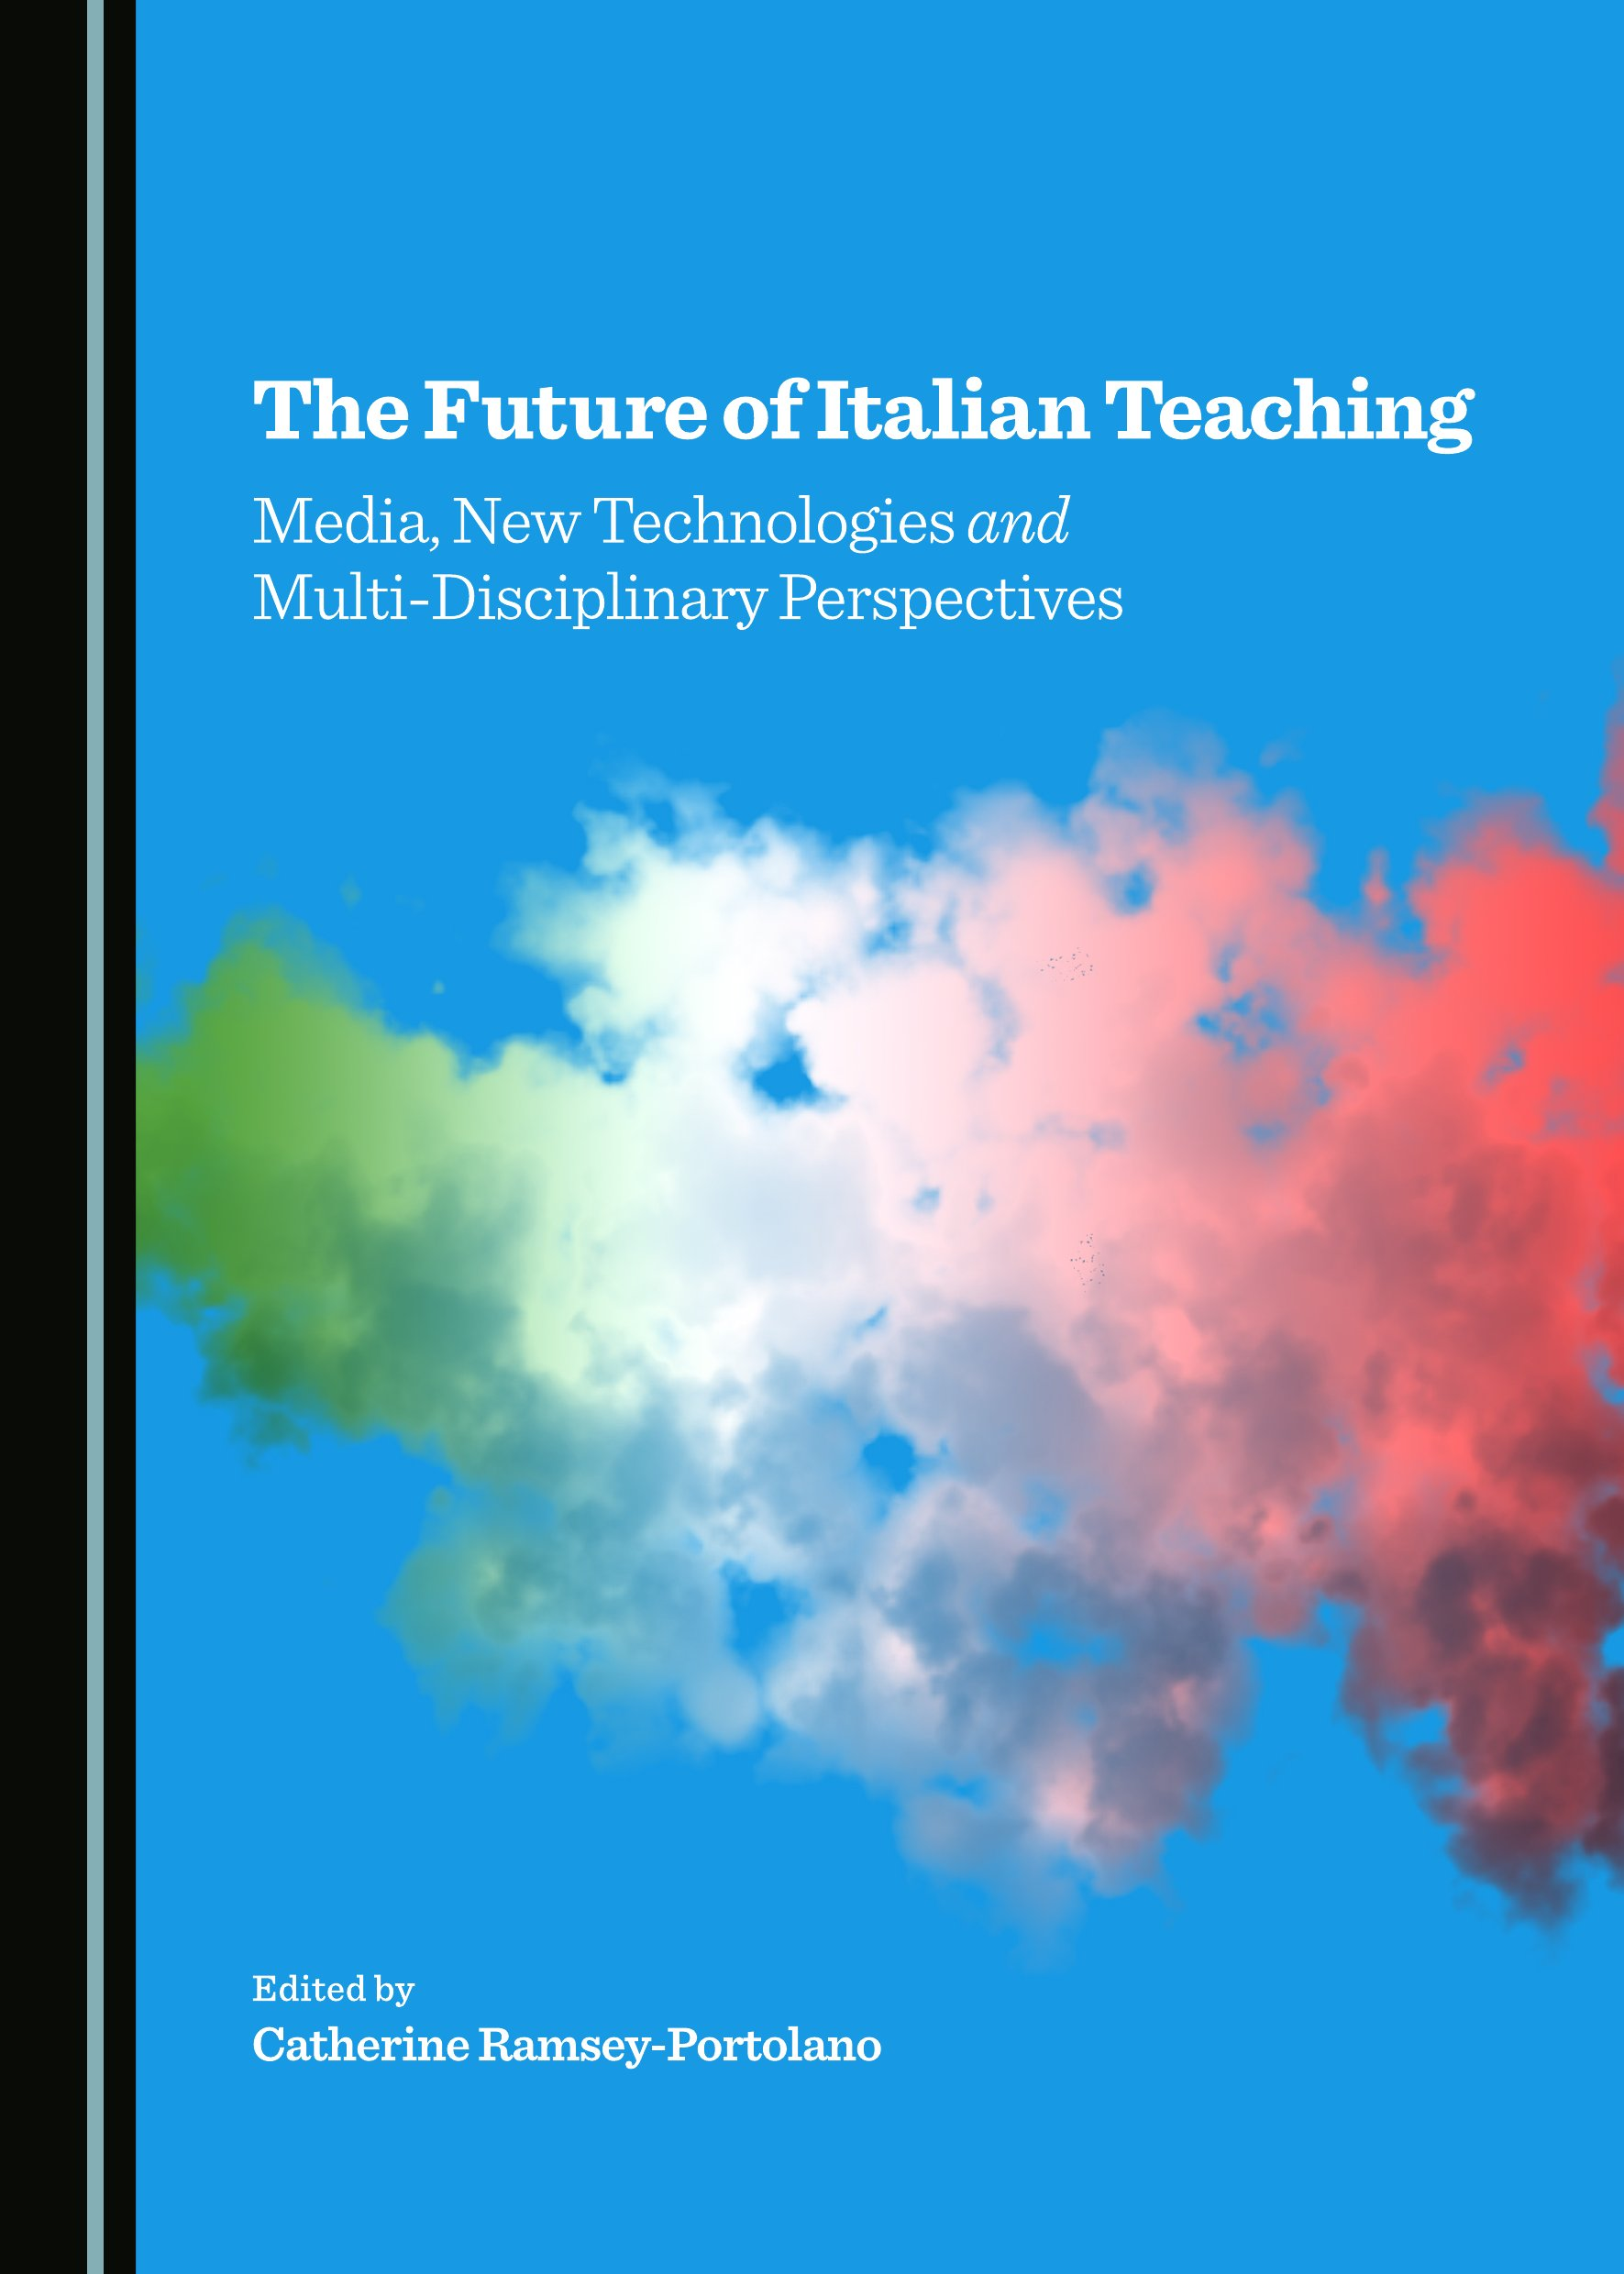 The Future of Italian Teaching: Media, New Technologies and Multi-Disciplinary Perspectives